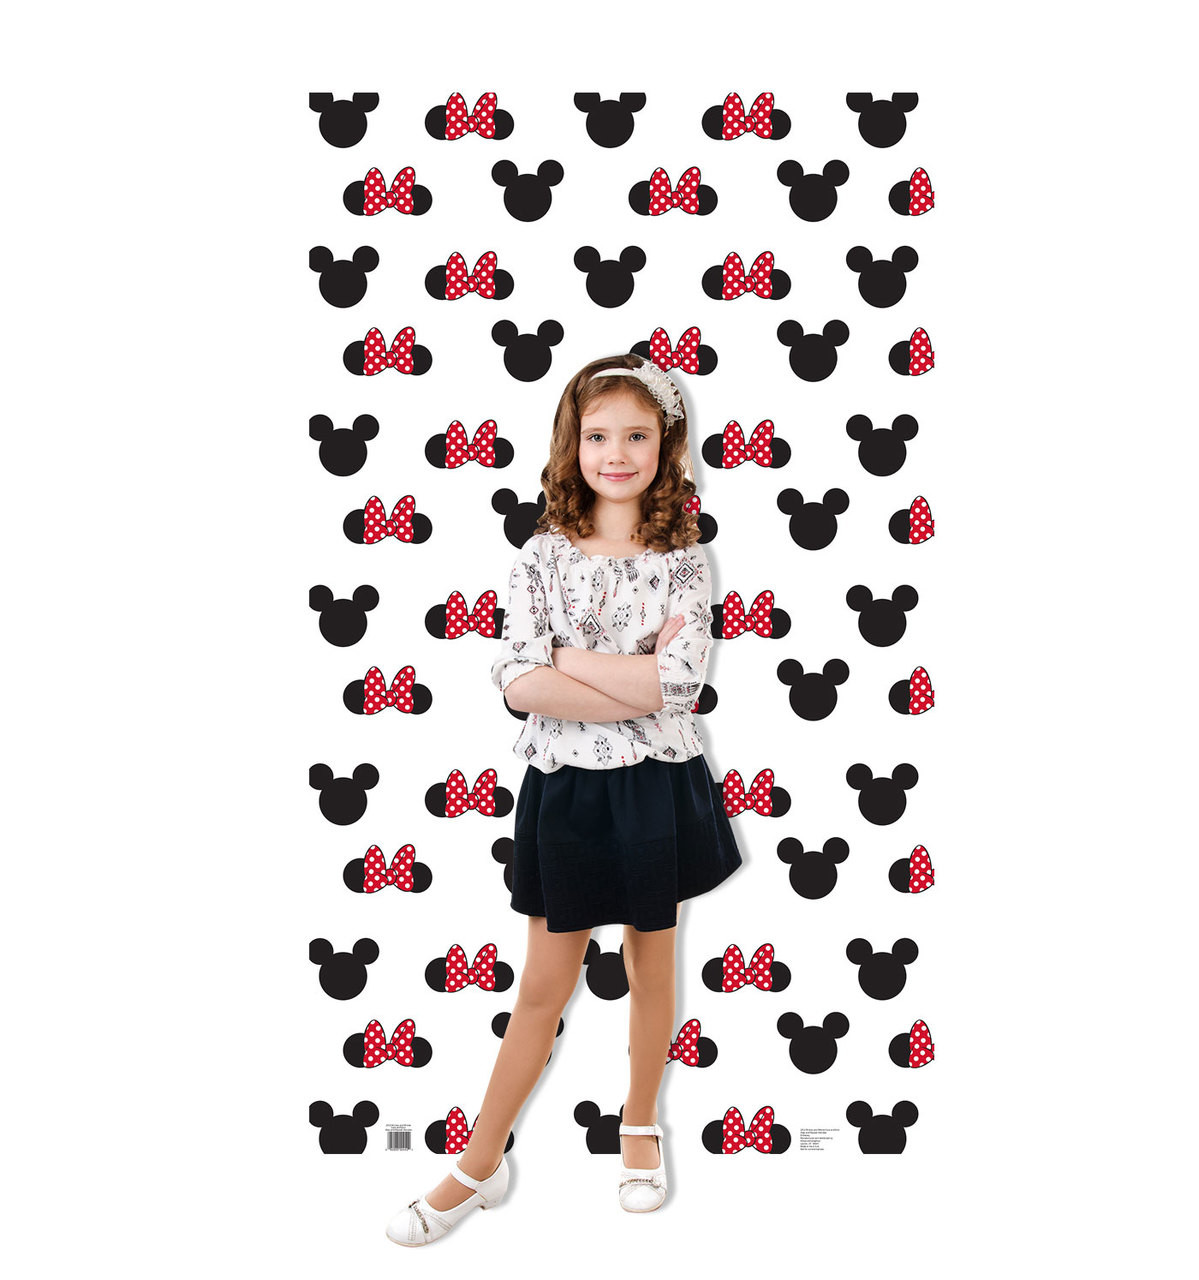 Mickey and Minnie Ears Step and Repeat Standup 2452